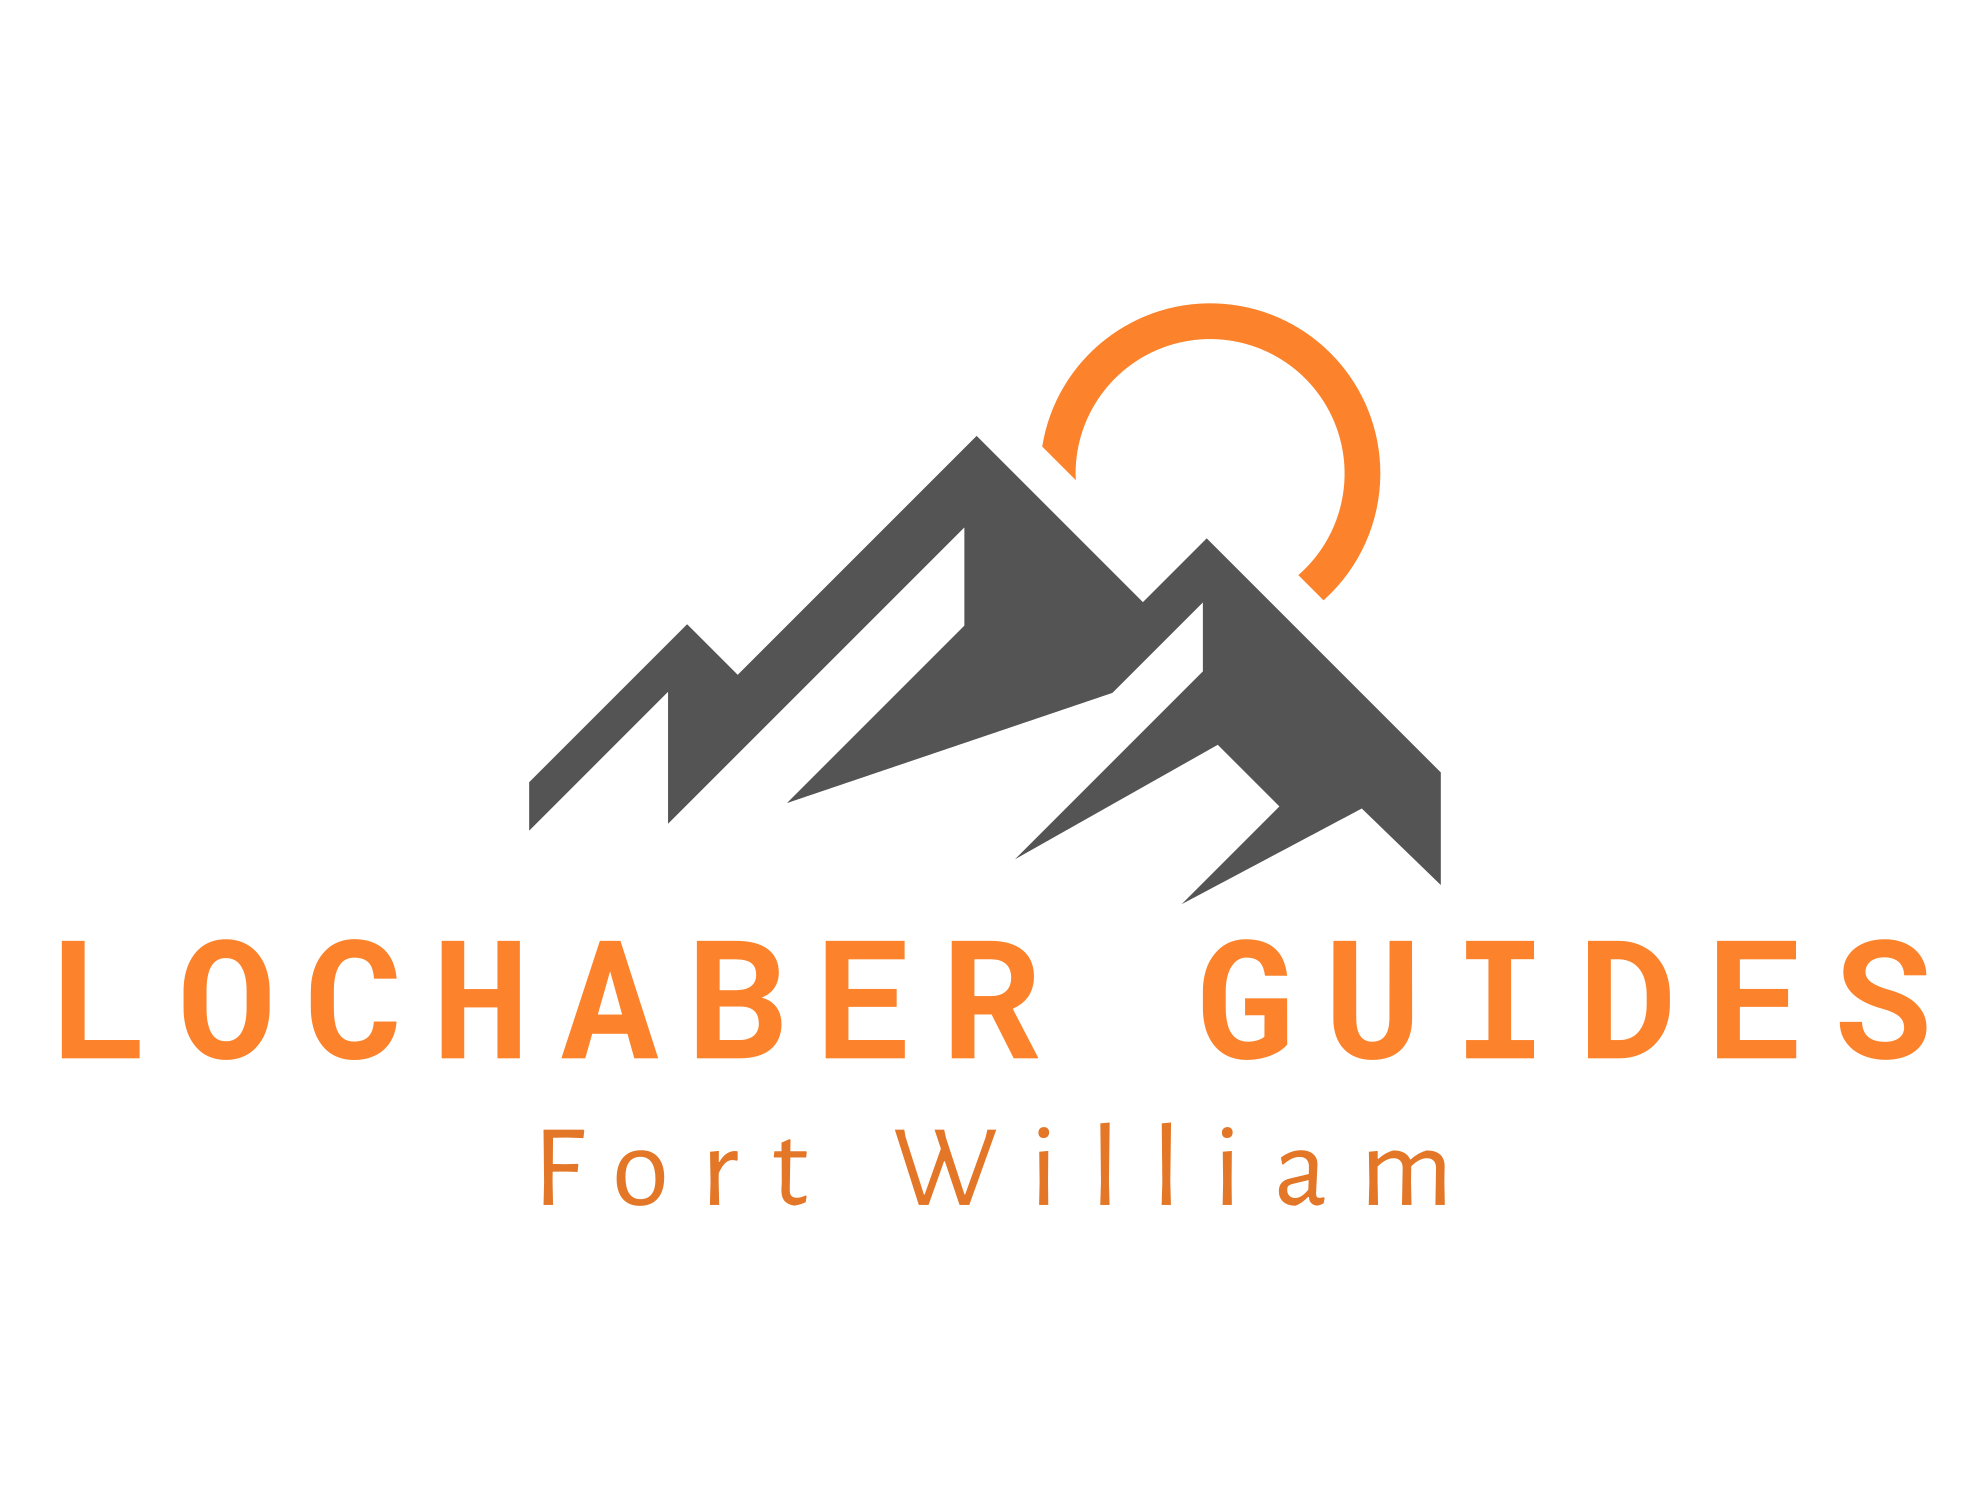 Lochaber Guides- Mountain Guiding and Skills Courses on Ben Nevis, Glencoe and Skye